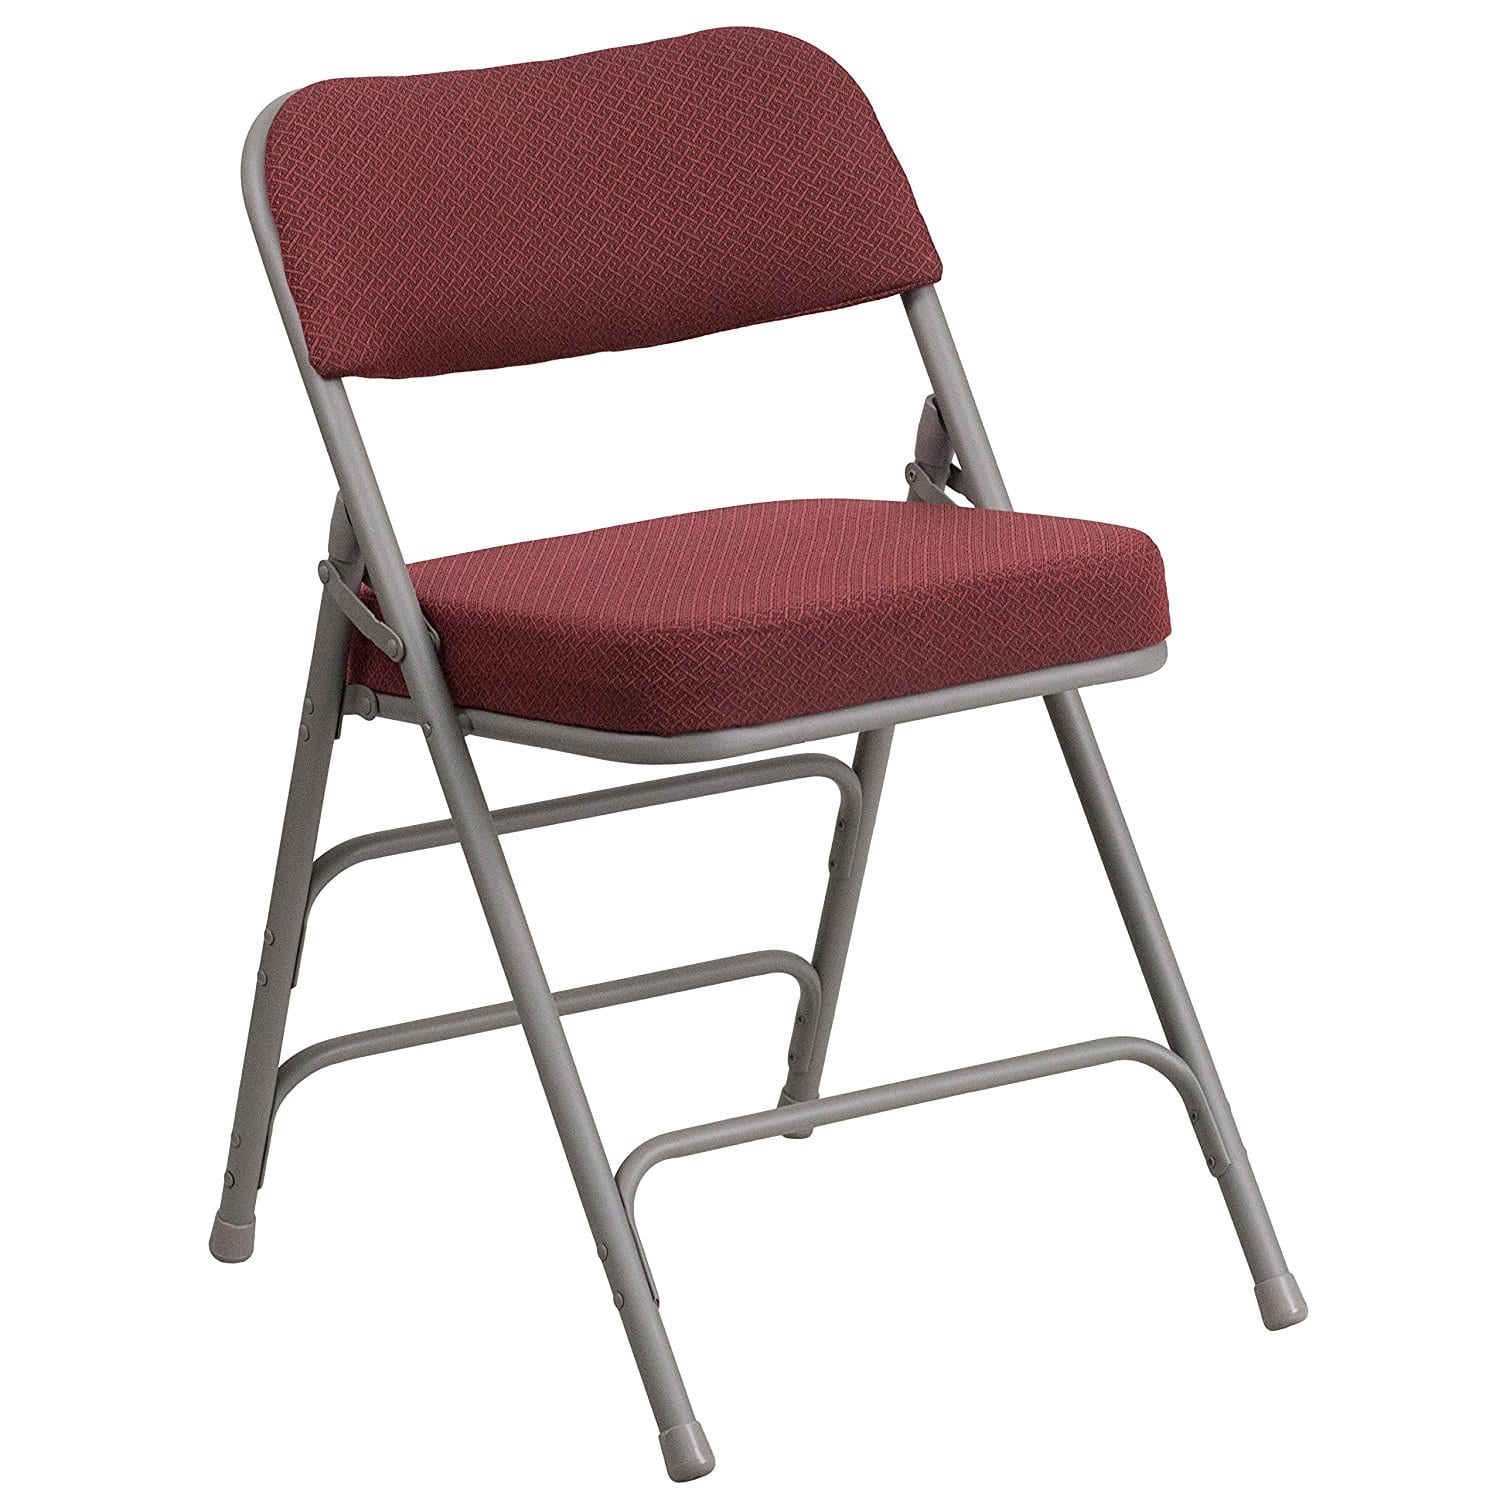 Amazon Fancy padded folding chair $12 83 shipped Slickdeals